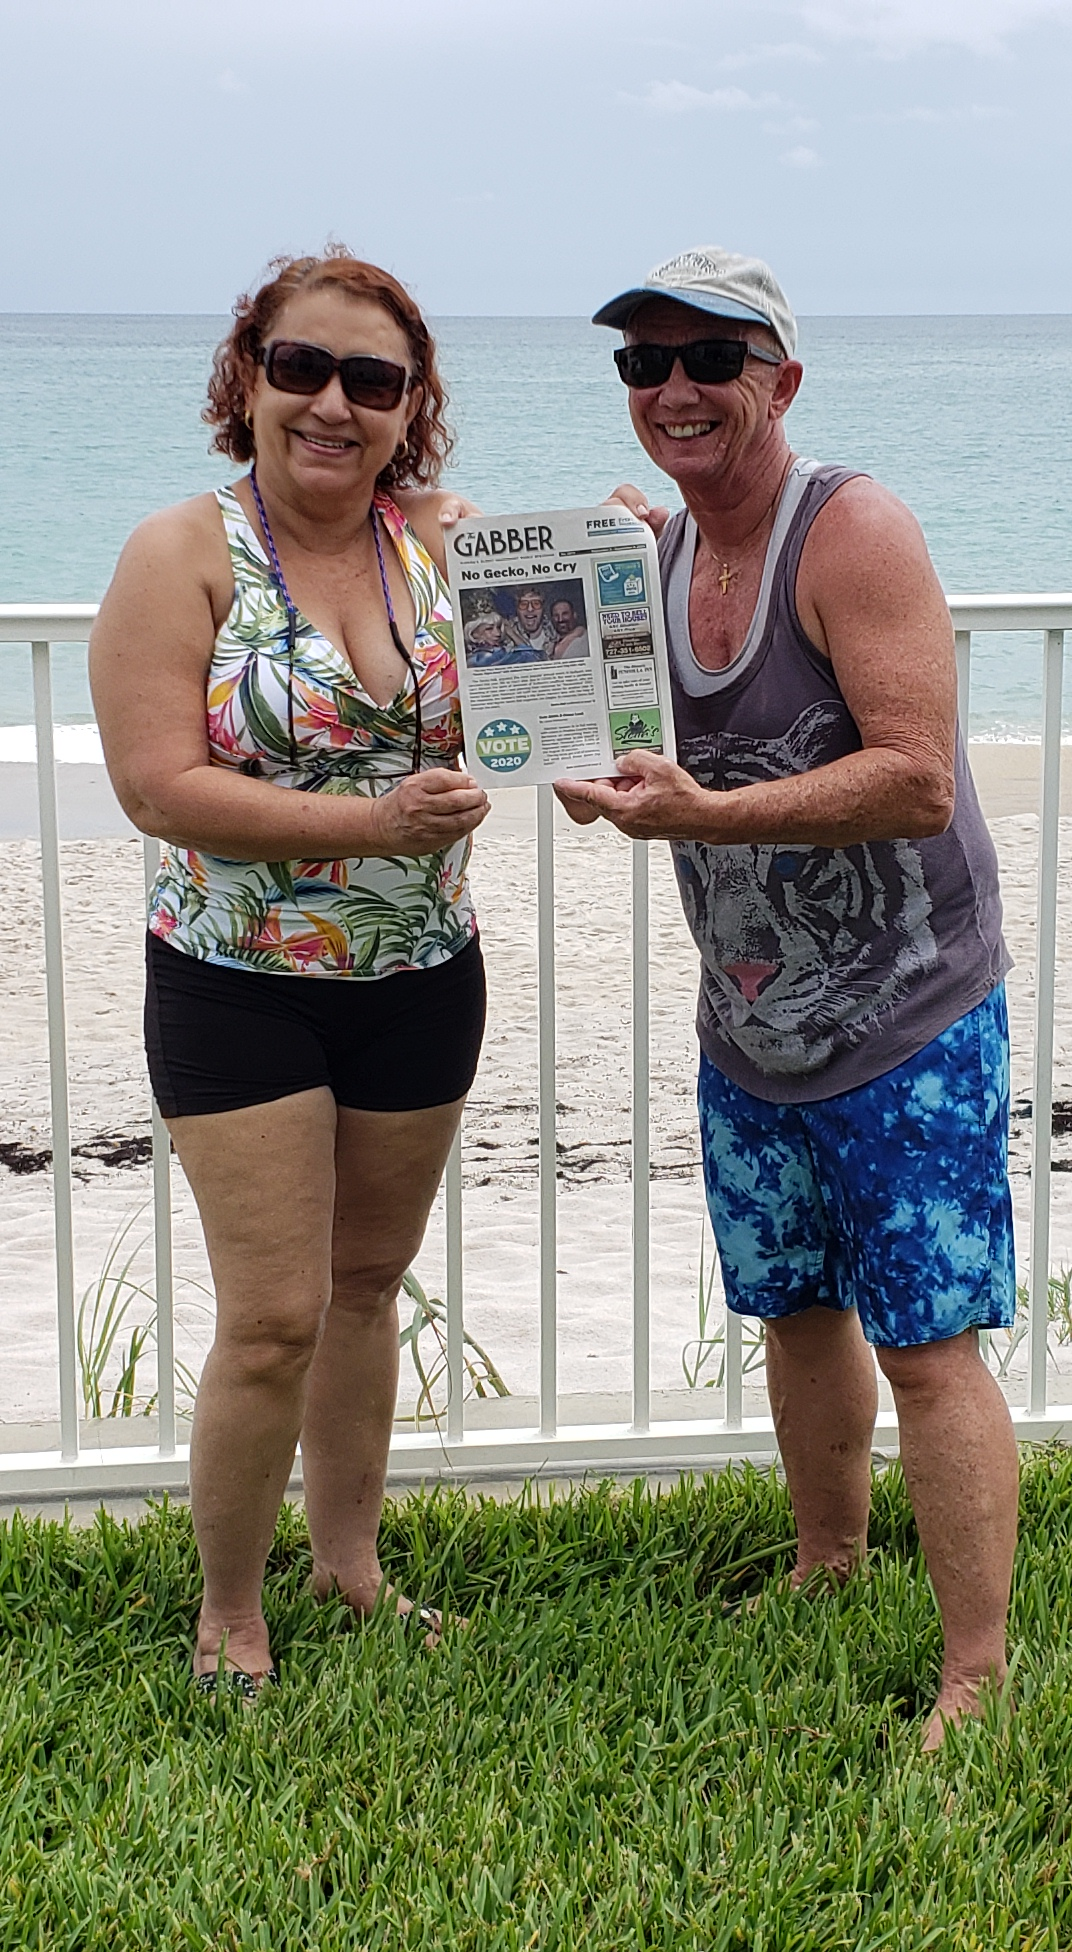 Two people on a beach in front of a fence holding a Gabber Newspaper